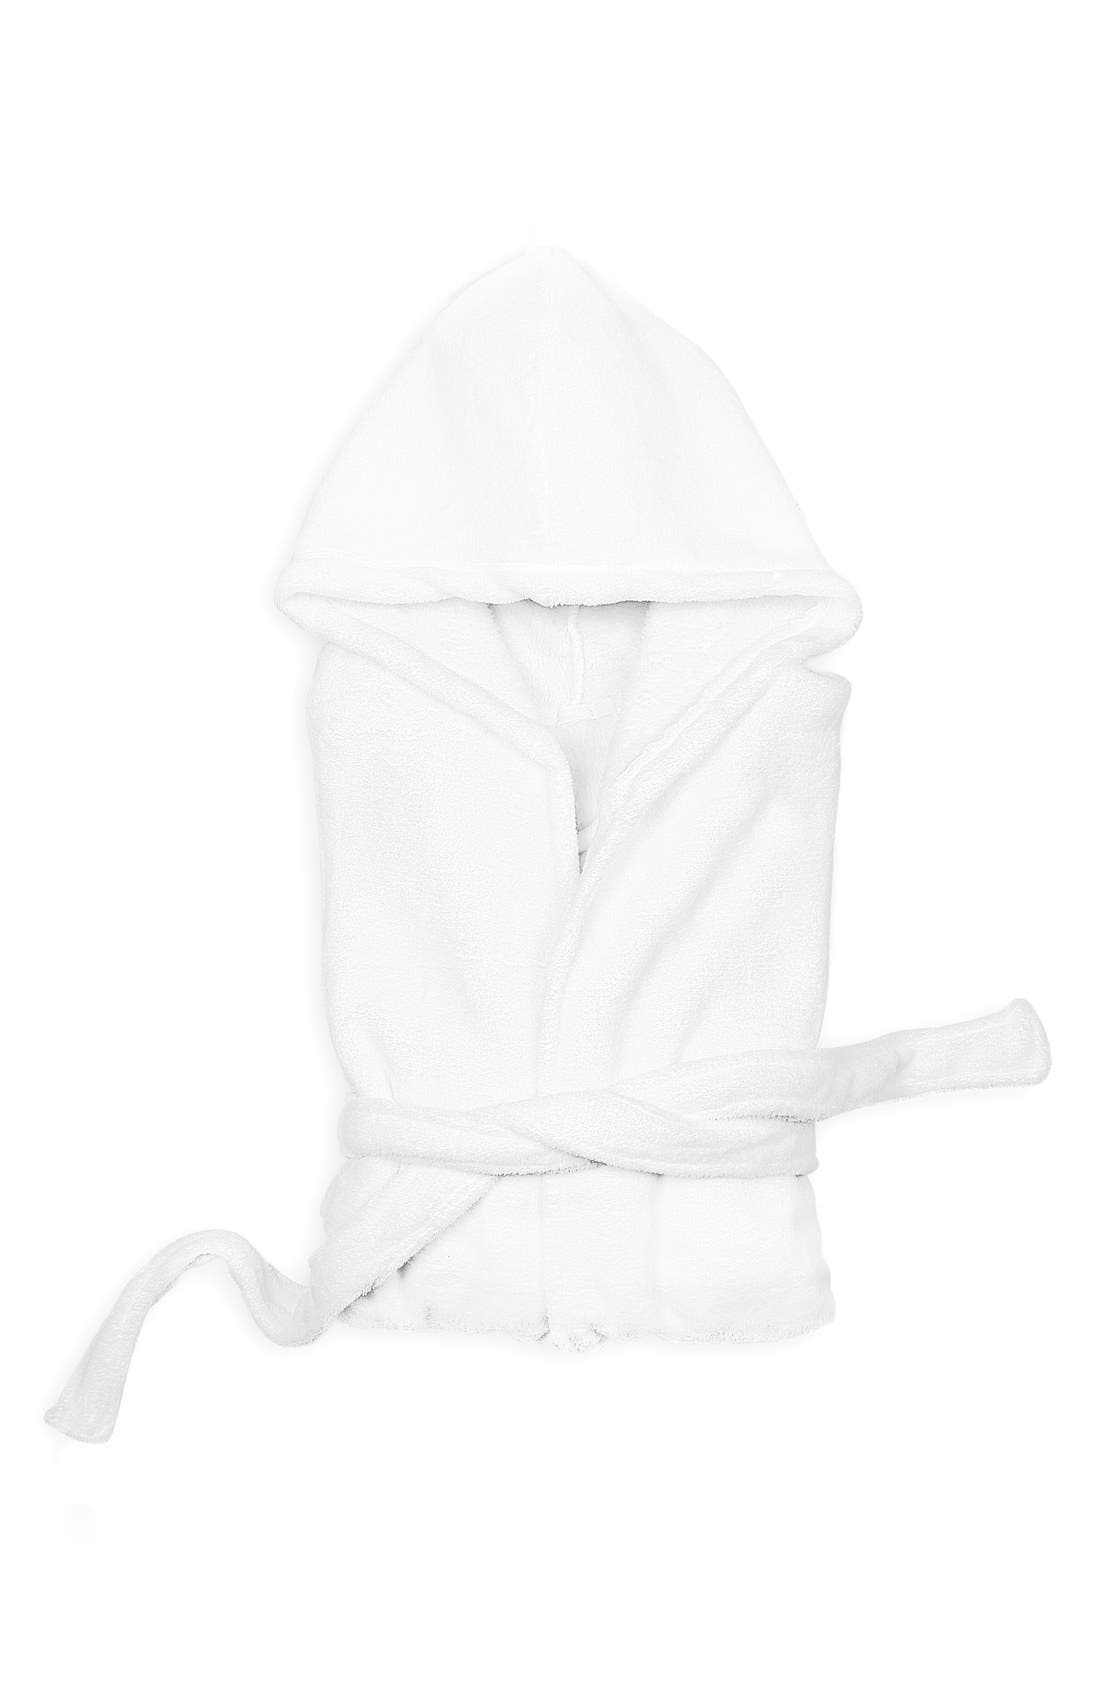 Personalized Plush Hooded Spa Robe,                         Main,                         color, 100